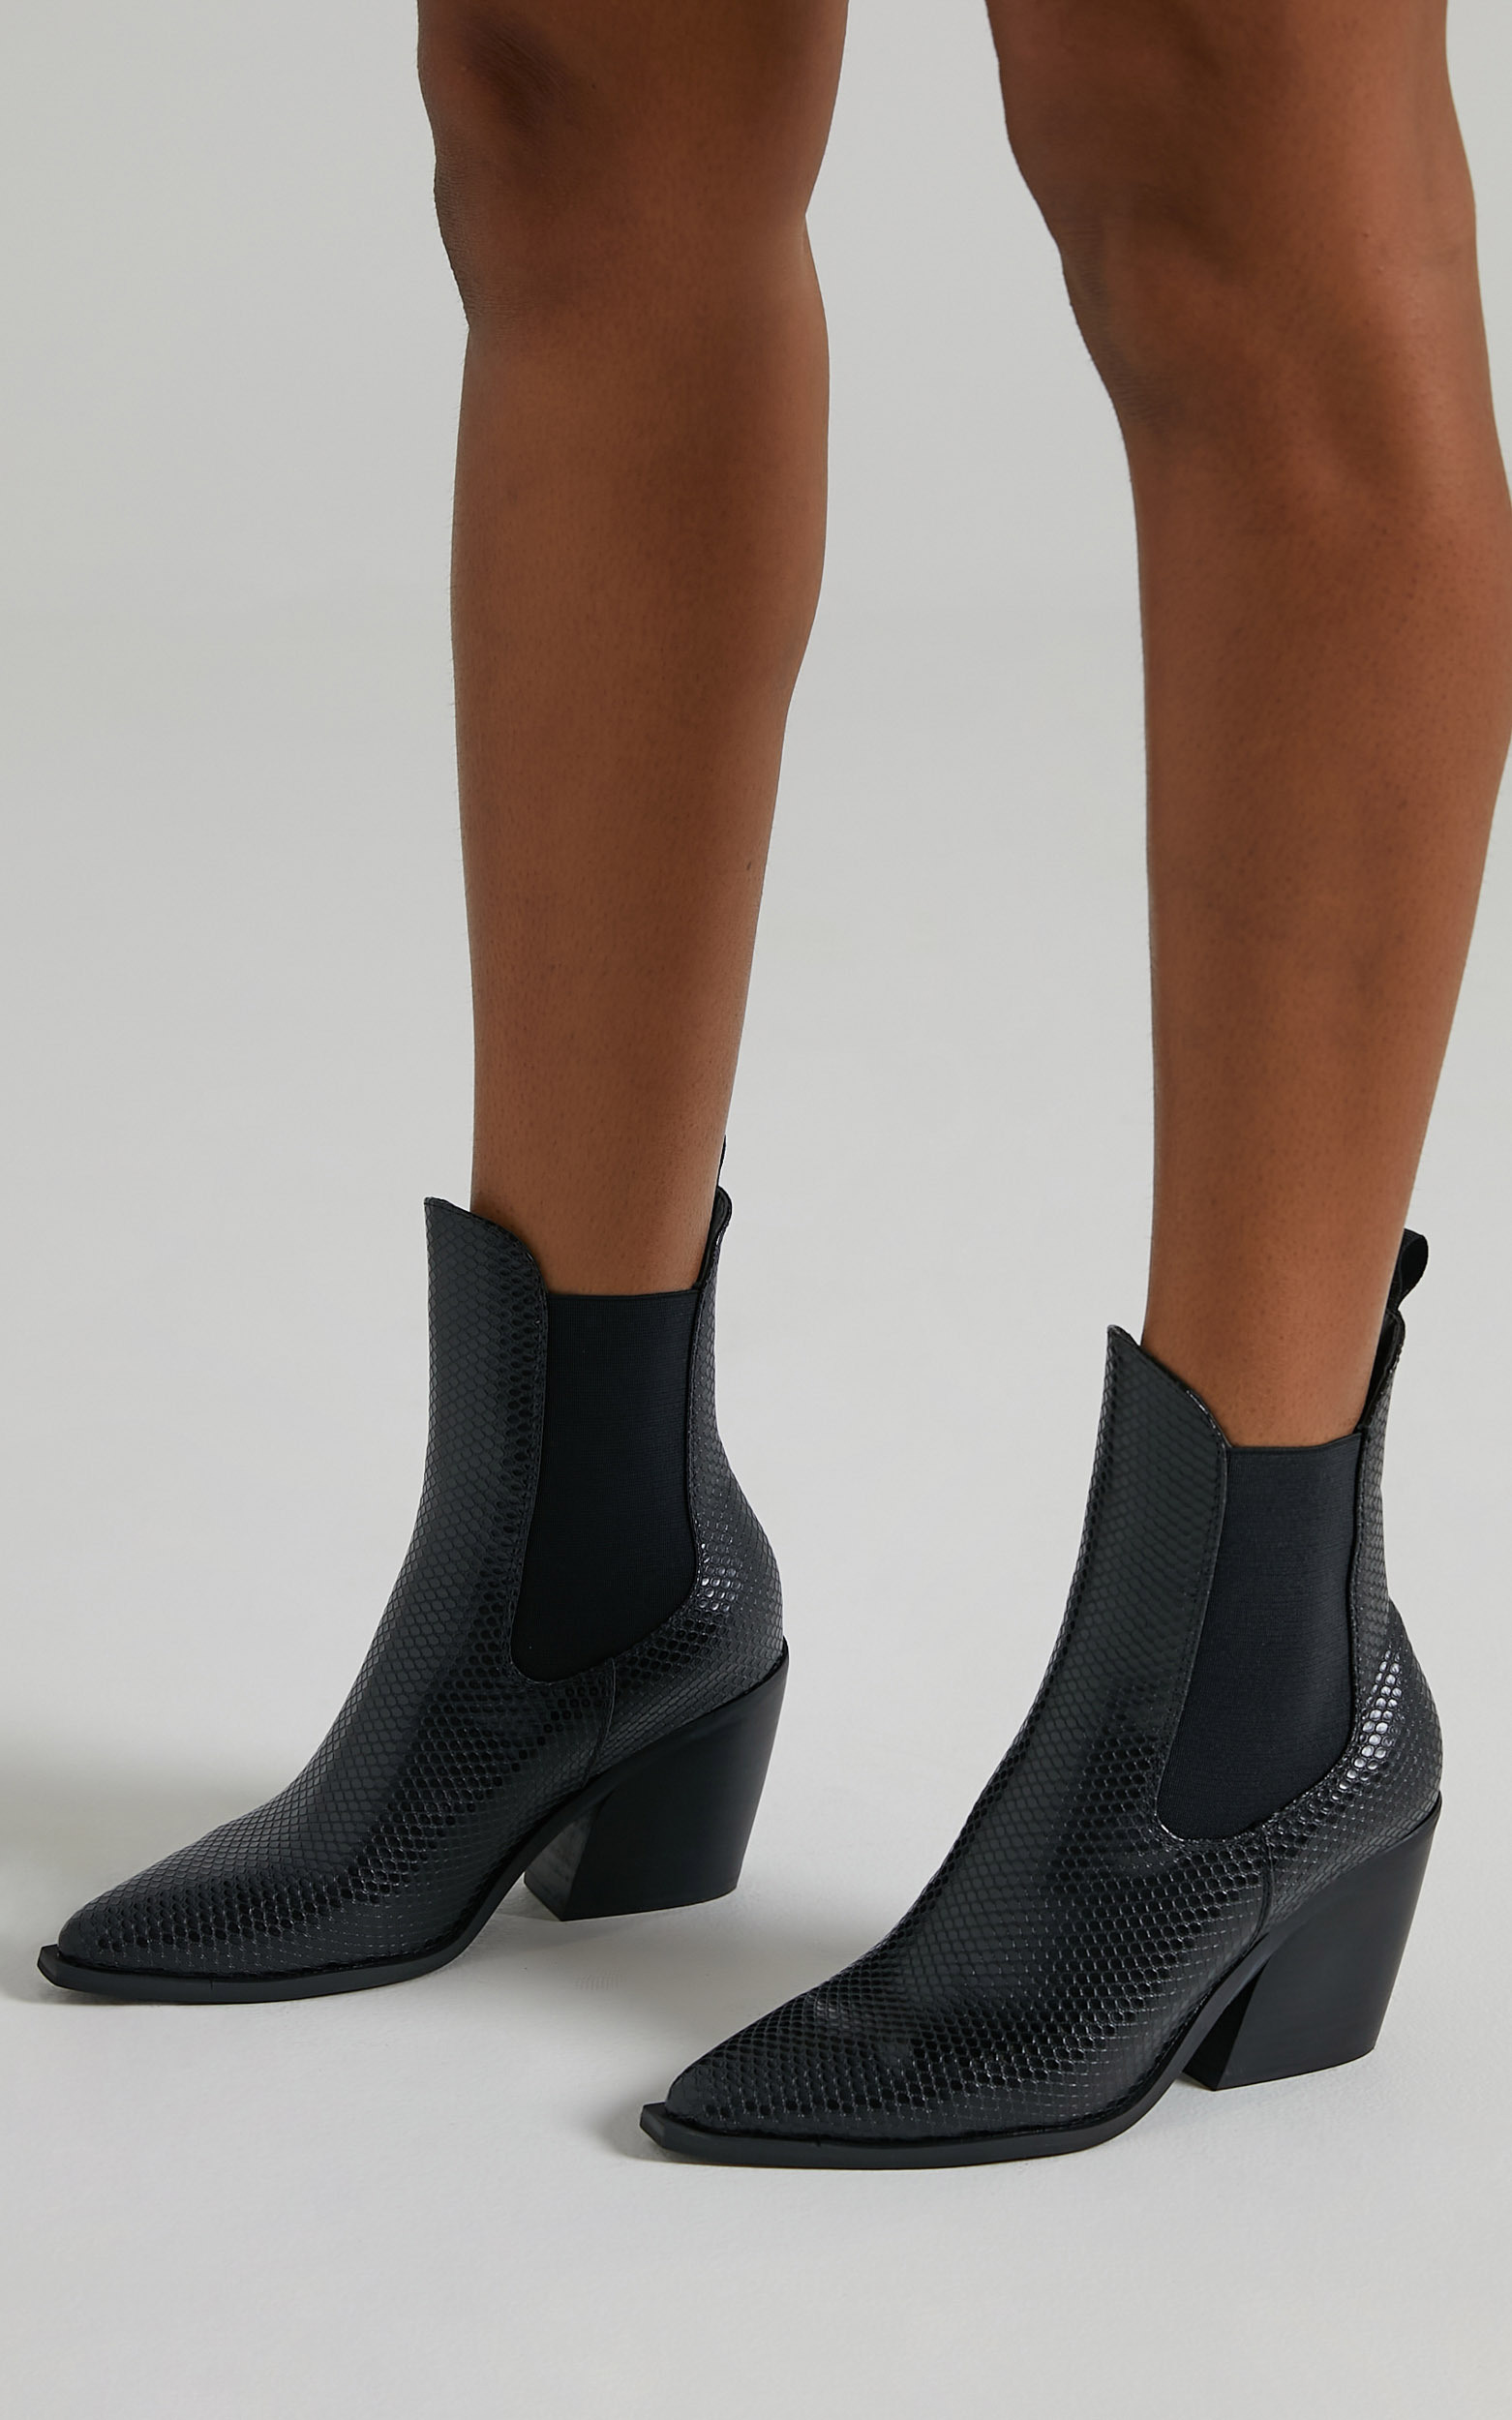 Therapy - Josette Boots in Black Snake - 05, BLK1, hi-res image number null